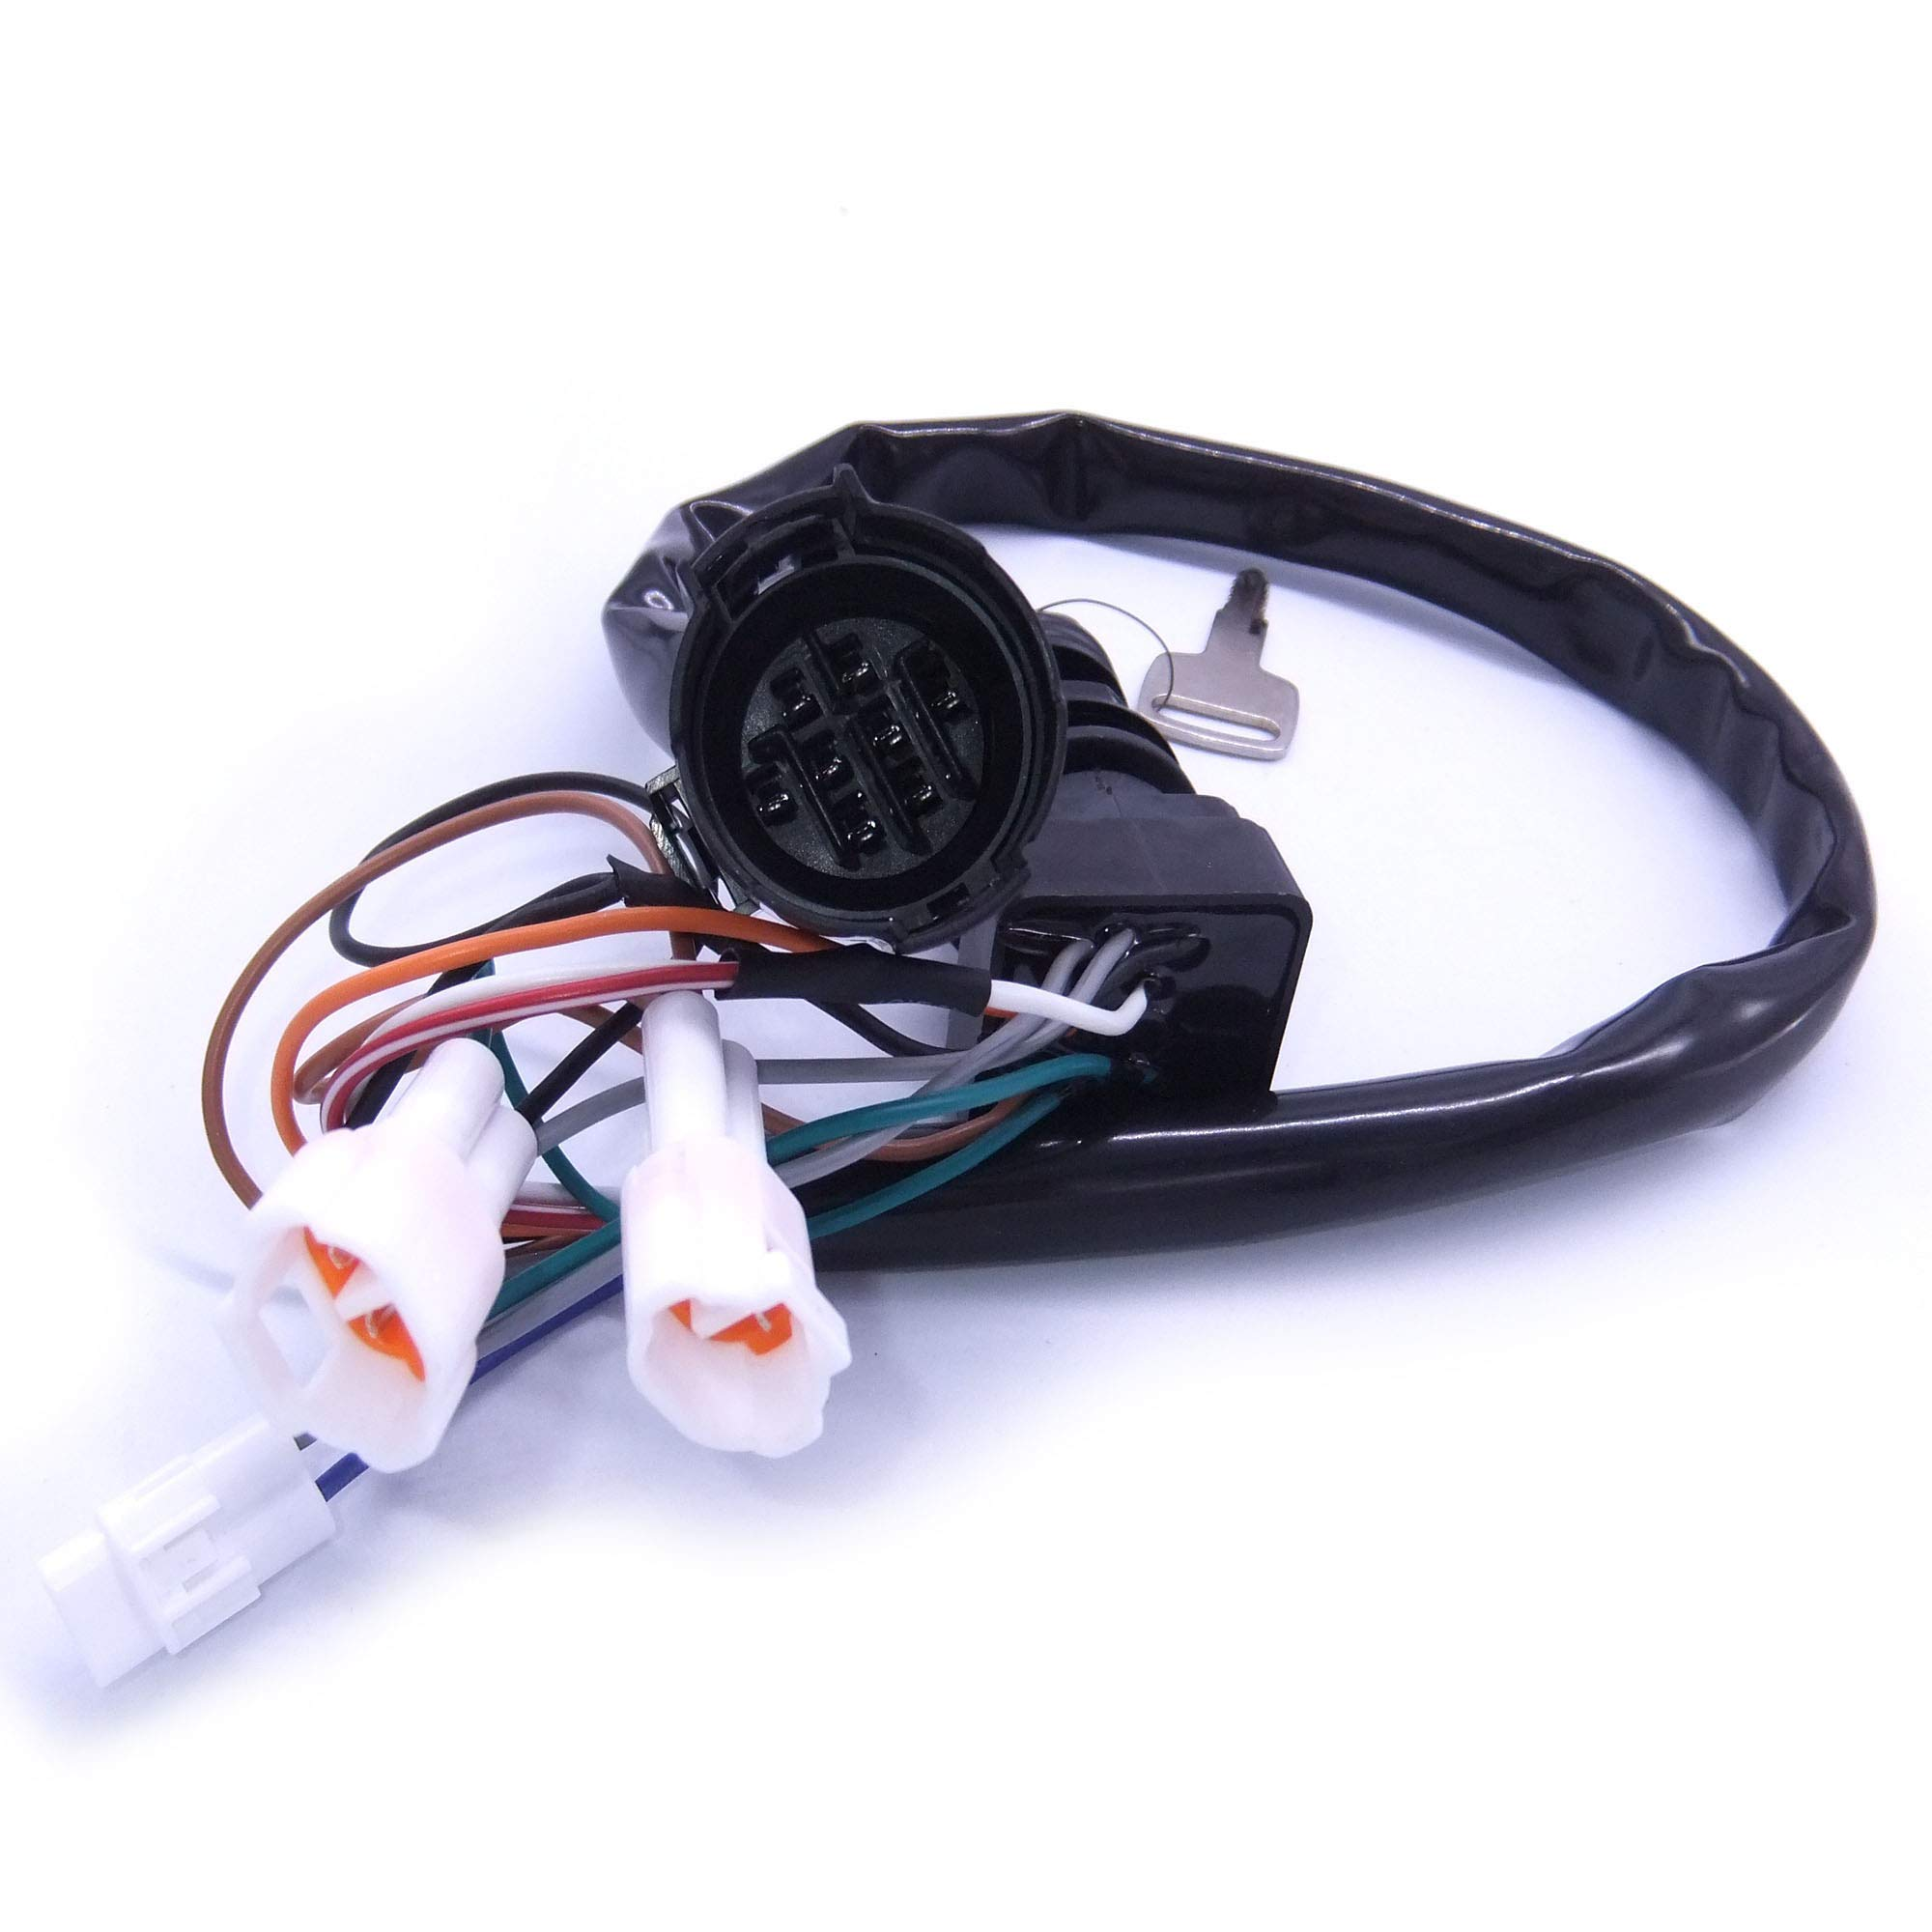 SouthMarine 37110-93J00 37110-93J01 Boat Motor Ignition Switch Assembly for Suzuki Outboard Motor by SouthMarine (Image #5)